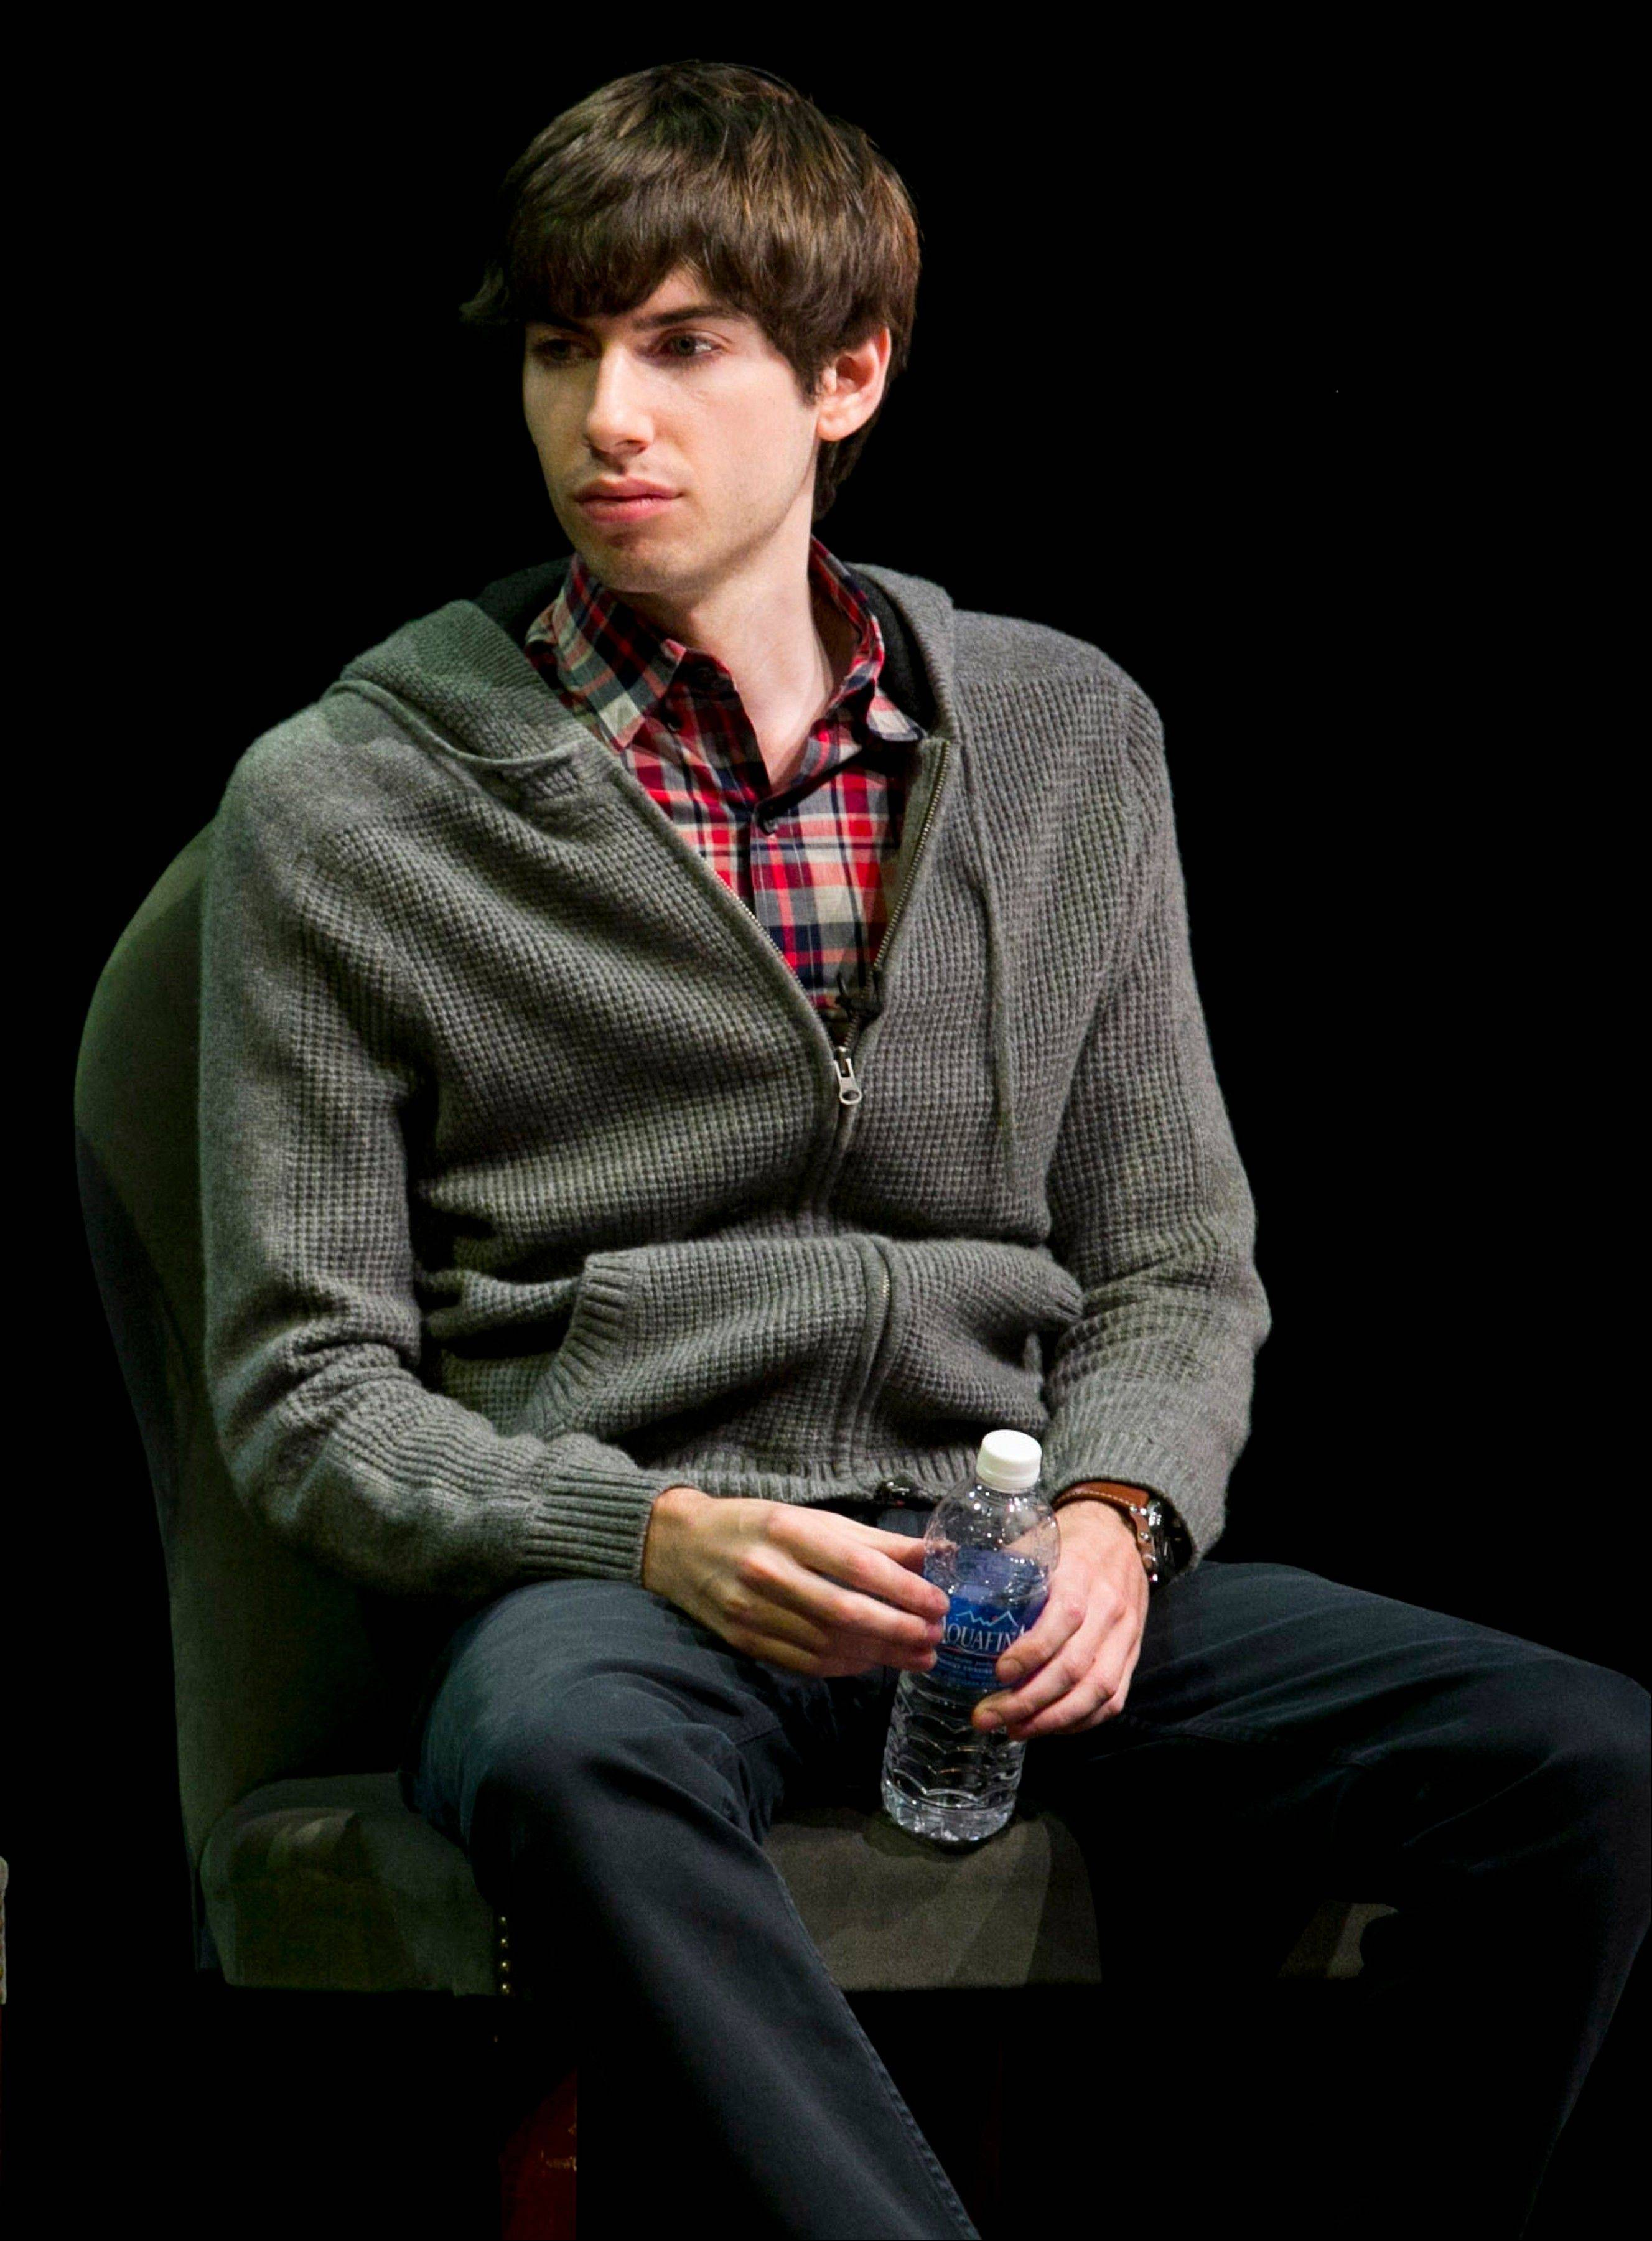 David Karp, 26, who dropped out of high school to concentrate on computer programming and started Tumblr six years ago, sold the online blogging forum to Yahoo last week for $1.1 billion.